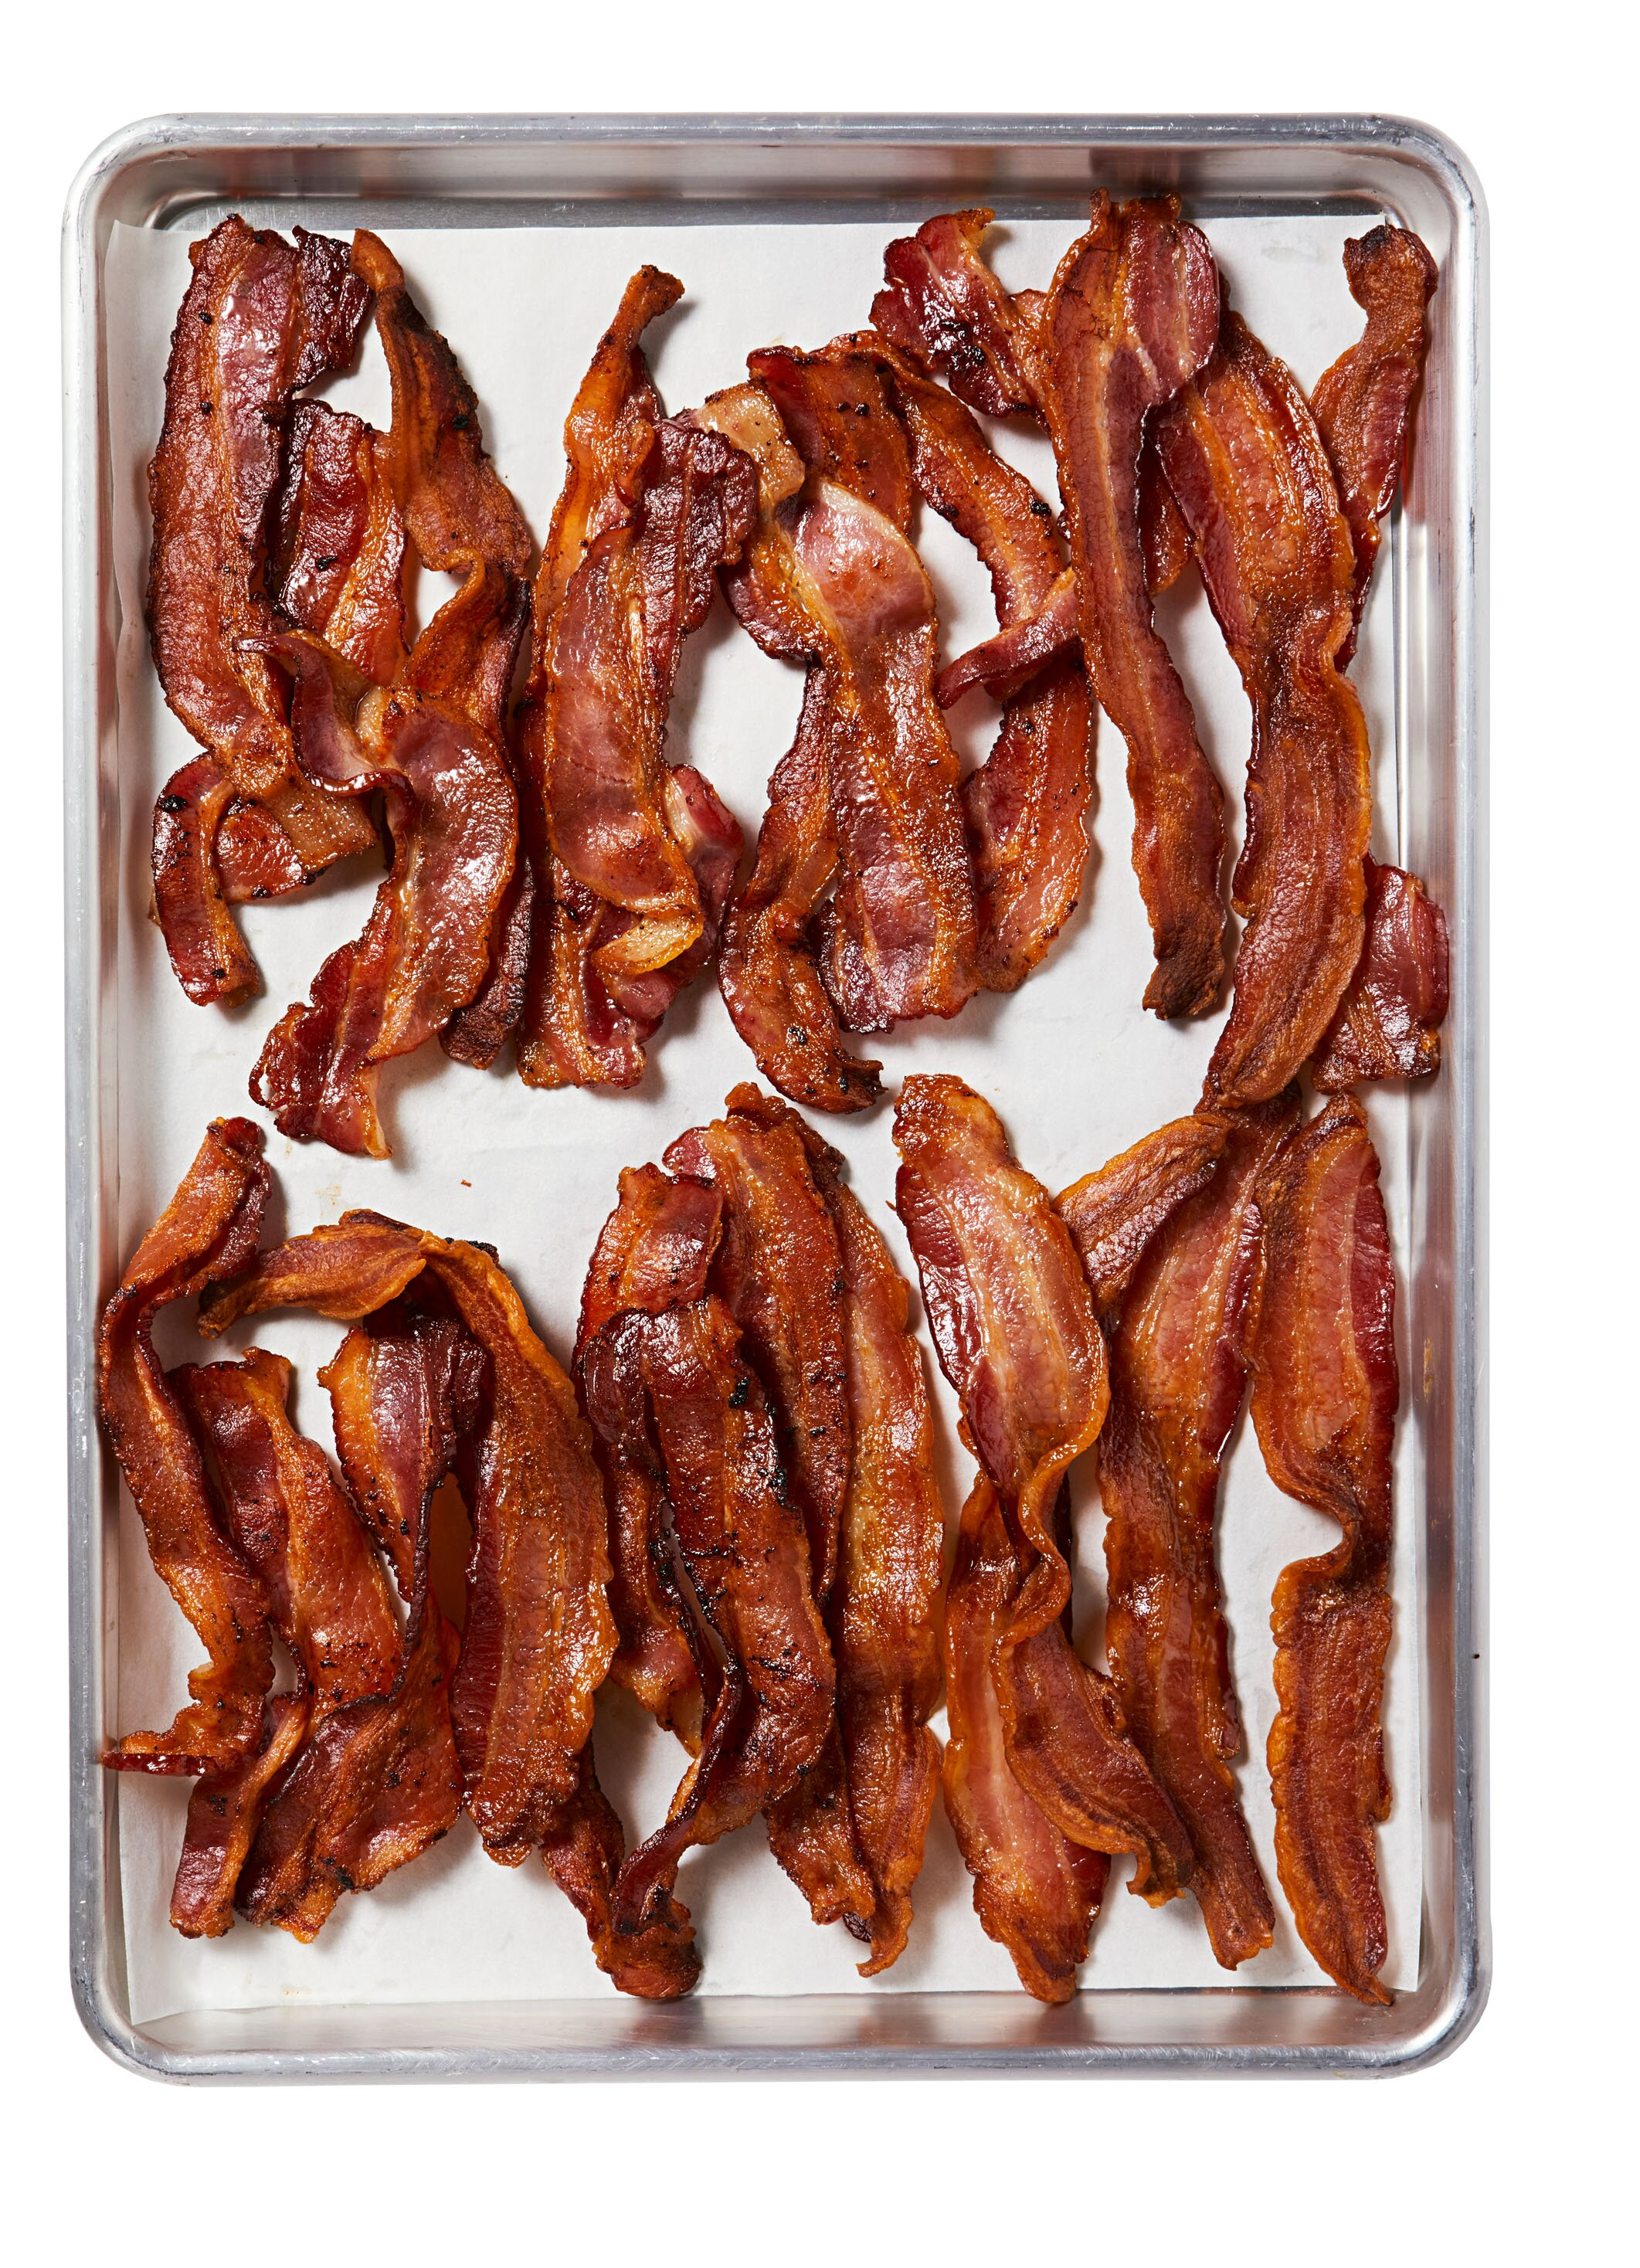 Less Mess Bacon How To Make Perfectly Crispy Bacon Without Tons Of Grease Spatter Martha Stewart